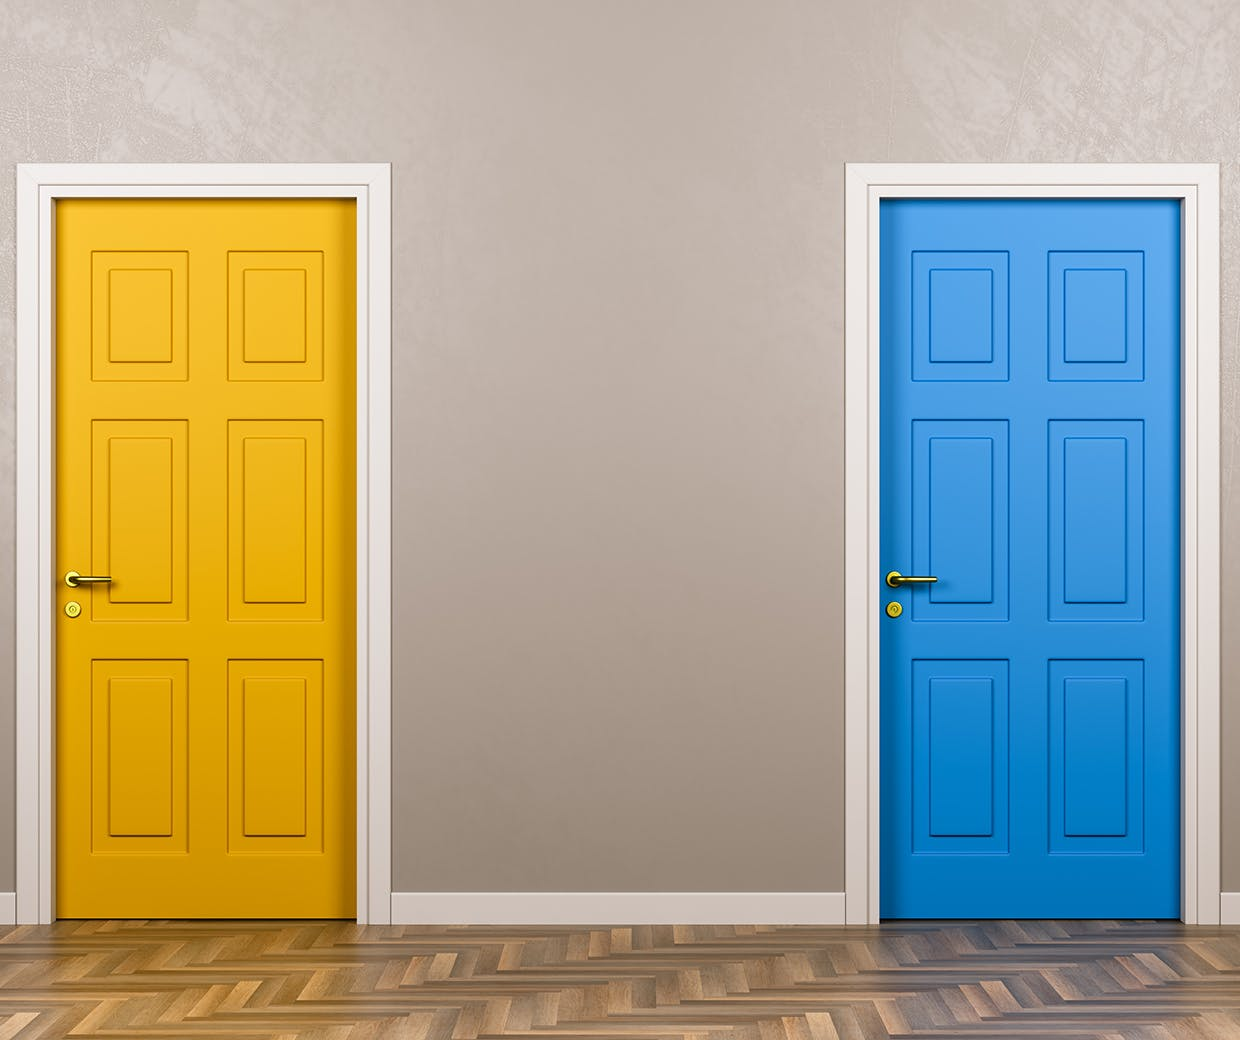 Don't forget the importance of A/B testing